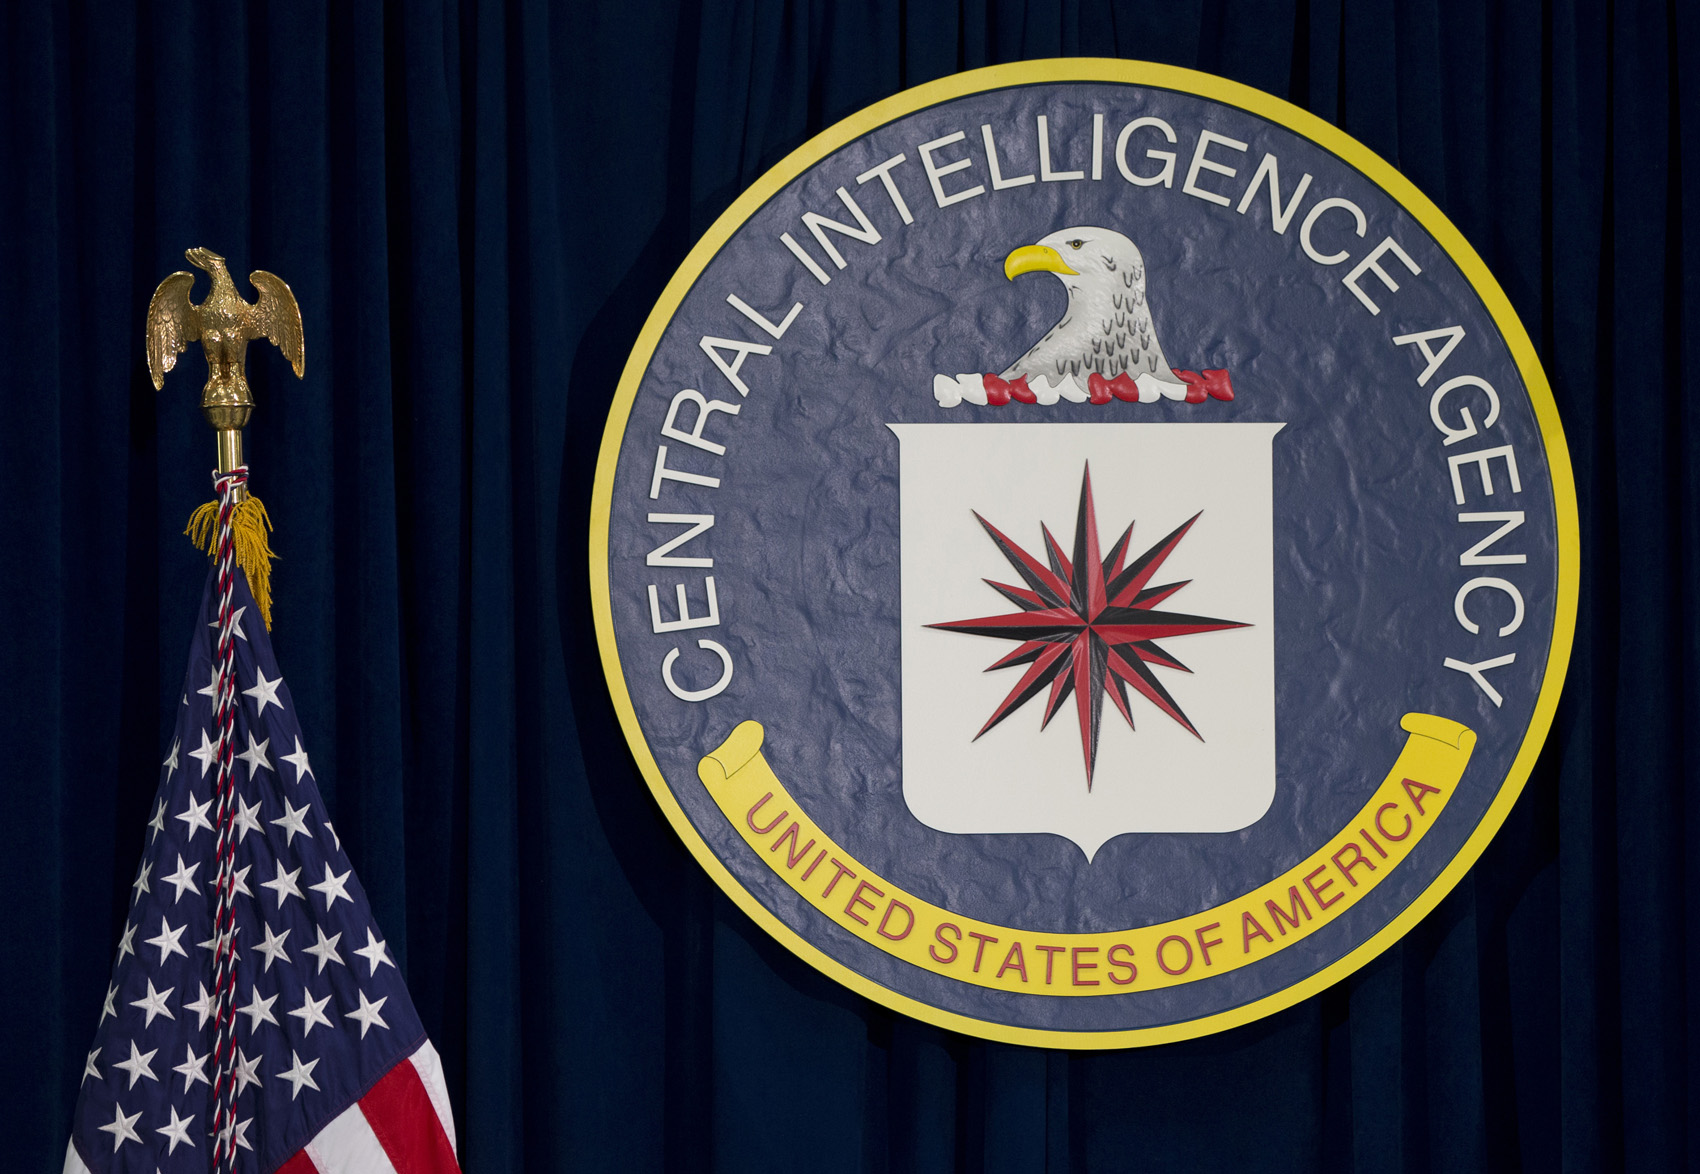 This April 13, 2016, file photo shows the seal of the Central Intelligence Agency at CIA headquarters in Langley, Va. (Carolyn Kaster/AP)